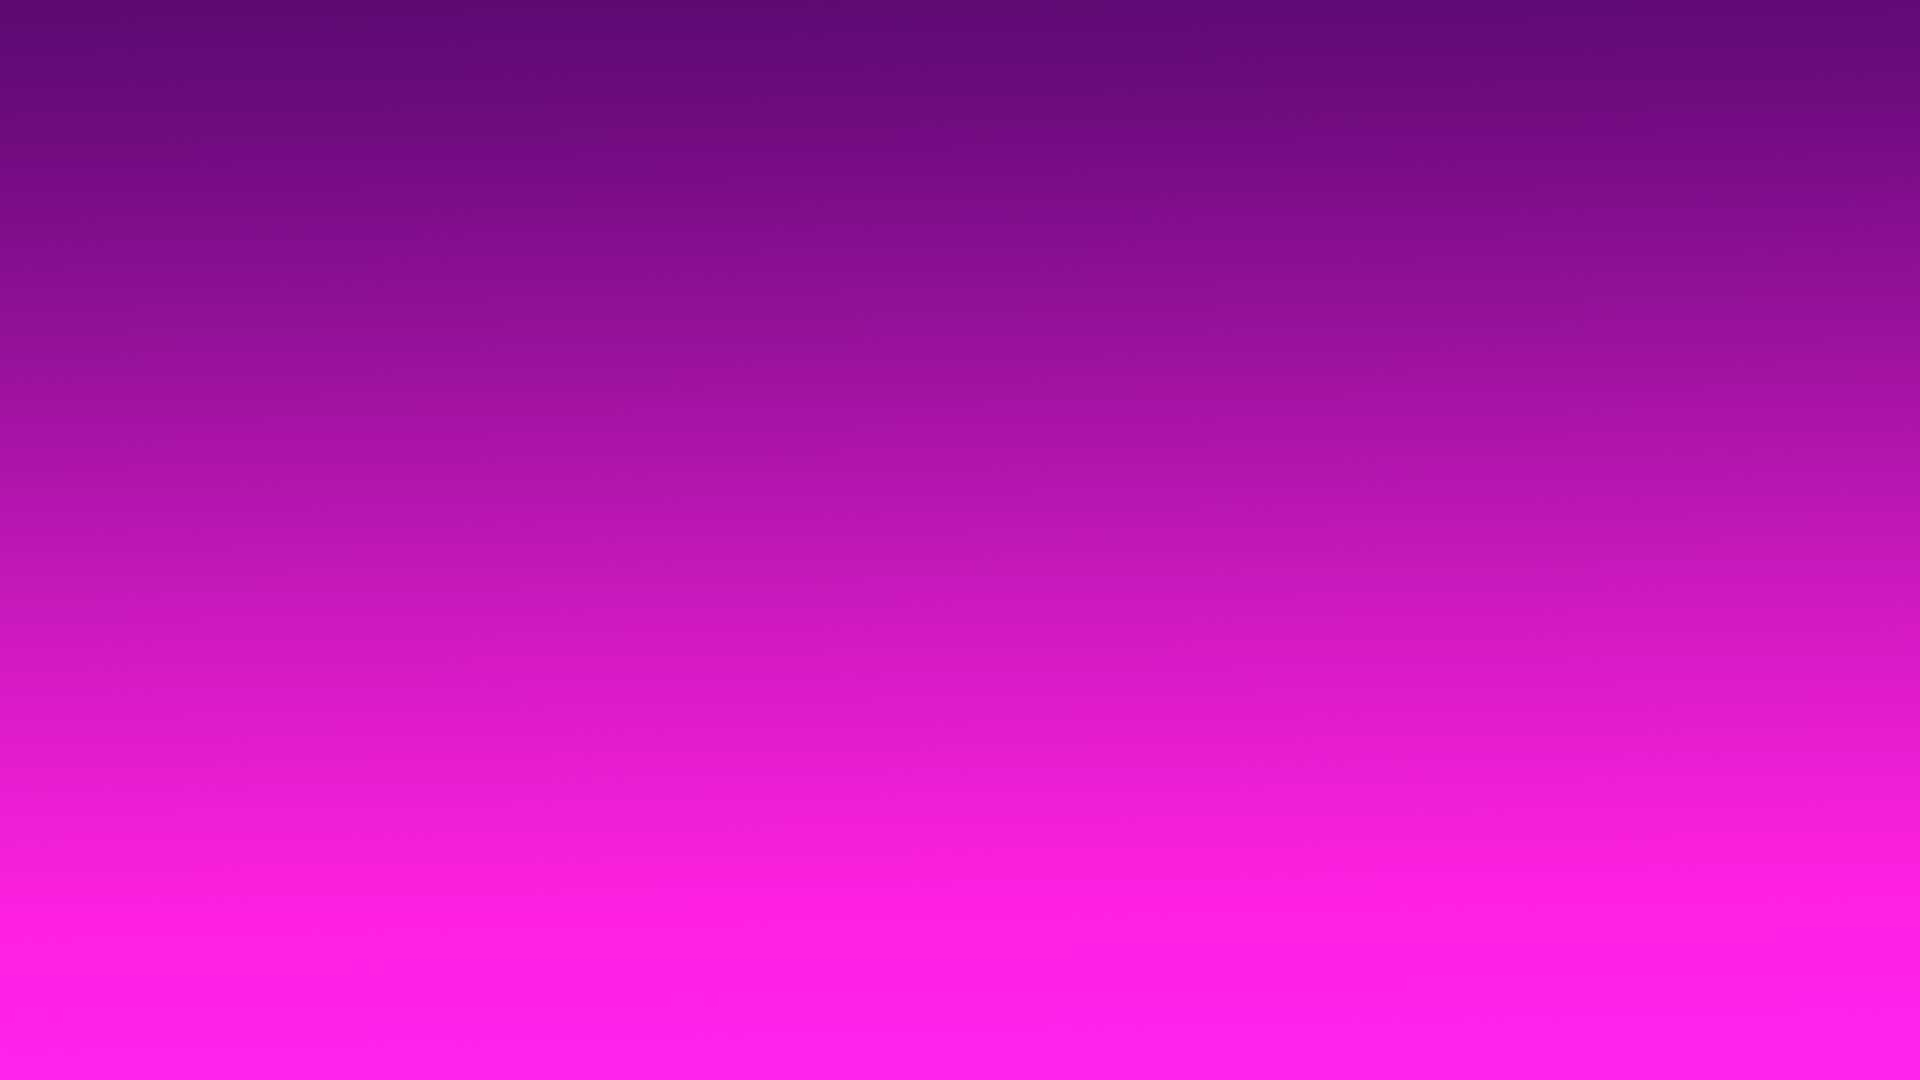 10 Latest Purple And Pink Backgrounds FULL HD 1080p For PC Desktop